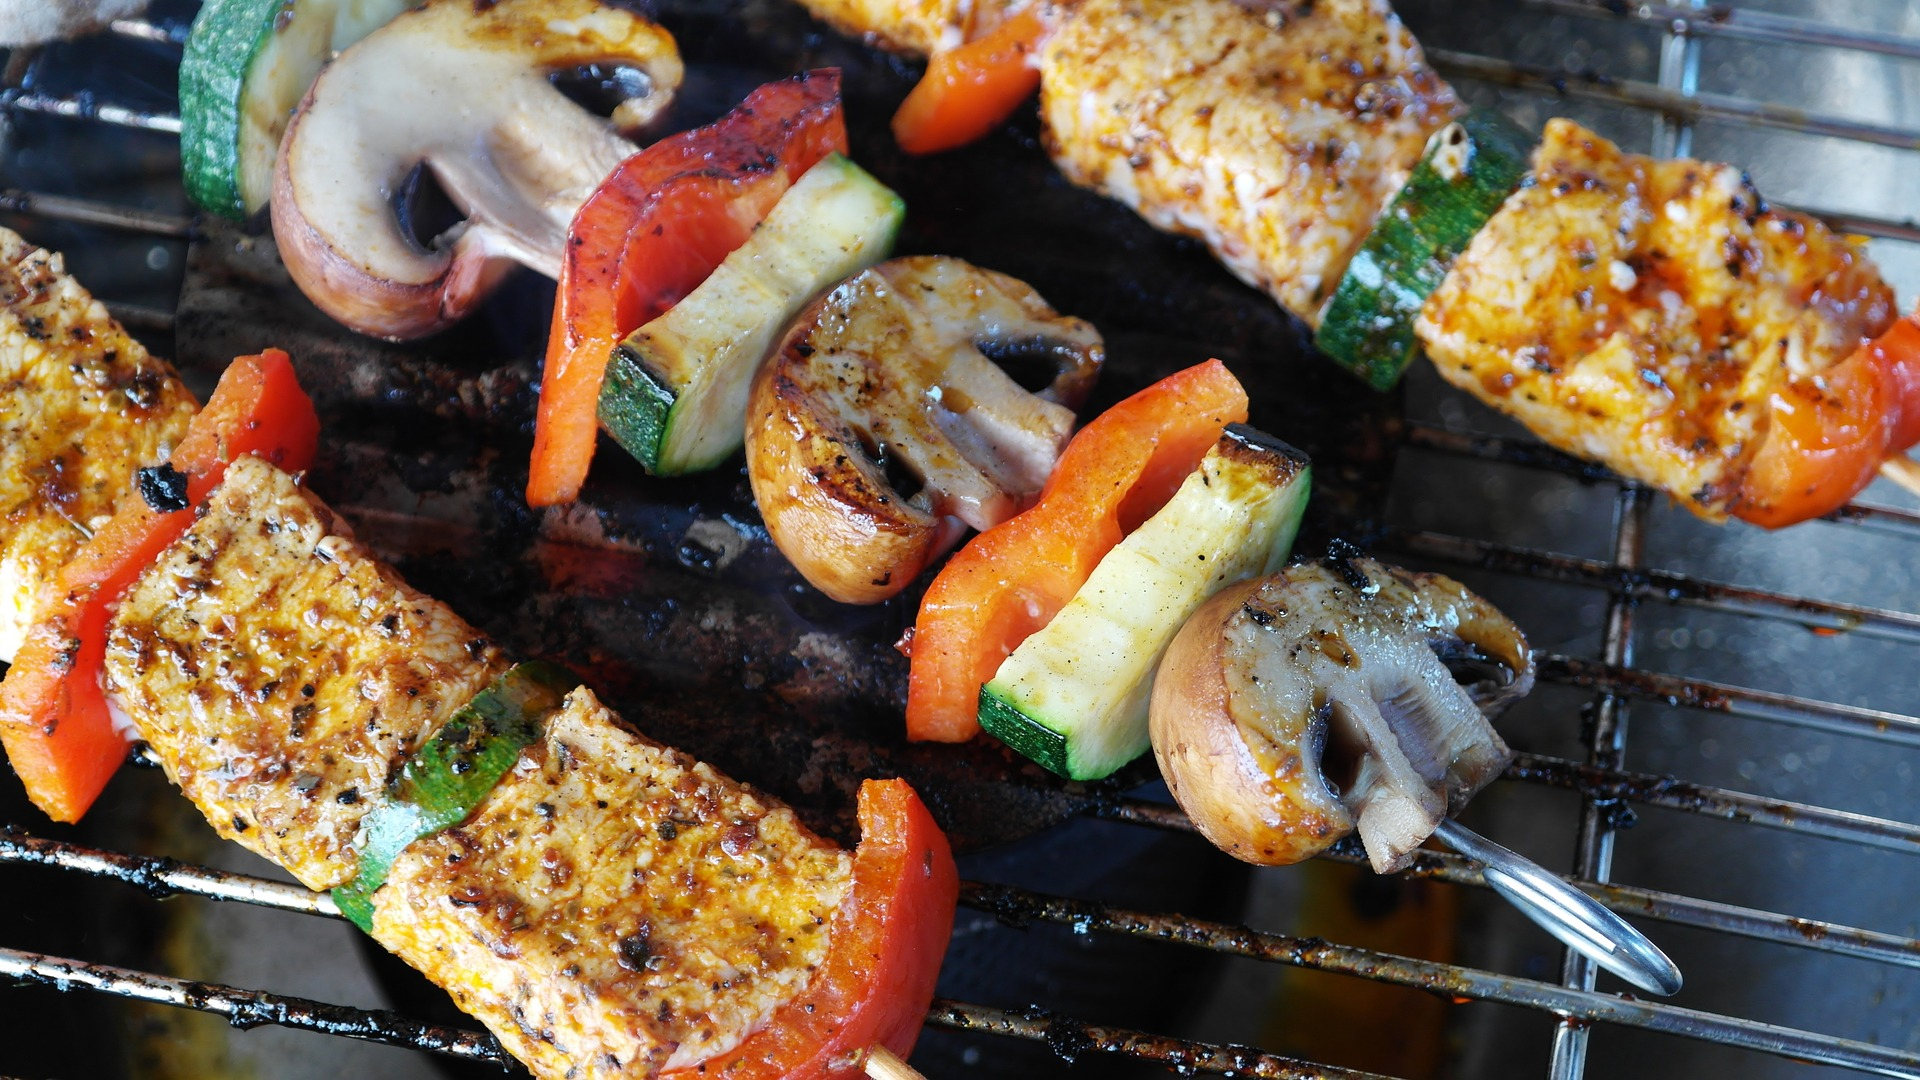 Summer Grilling – Not Just for Burgers